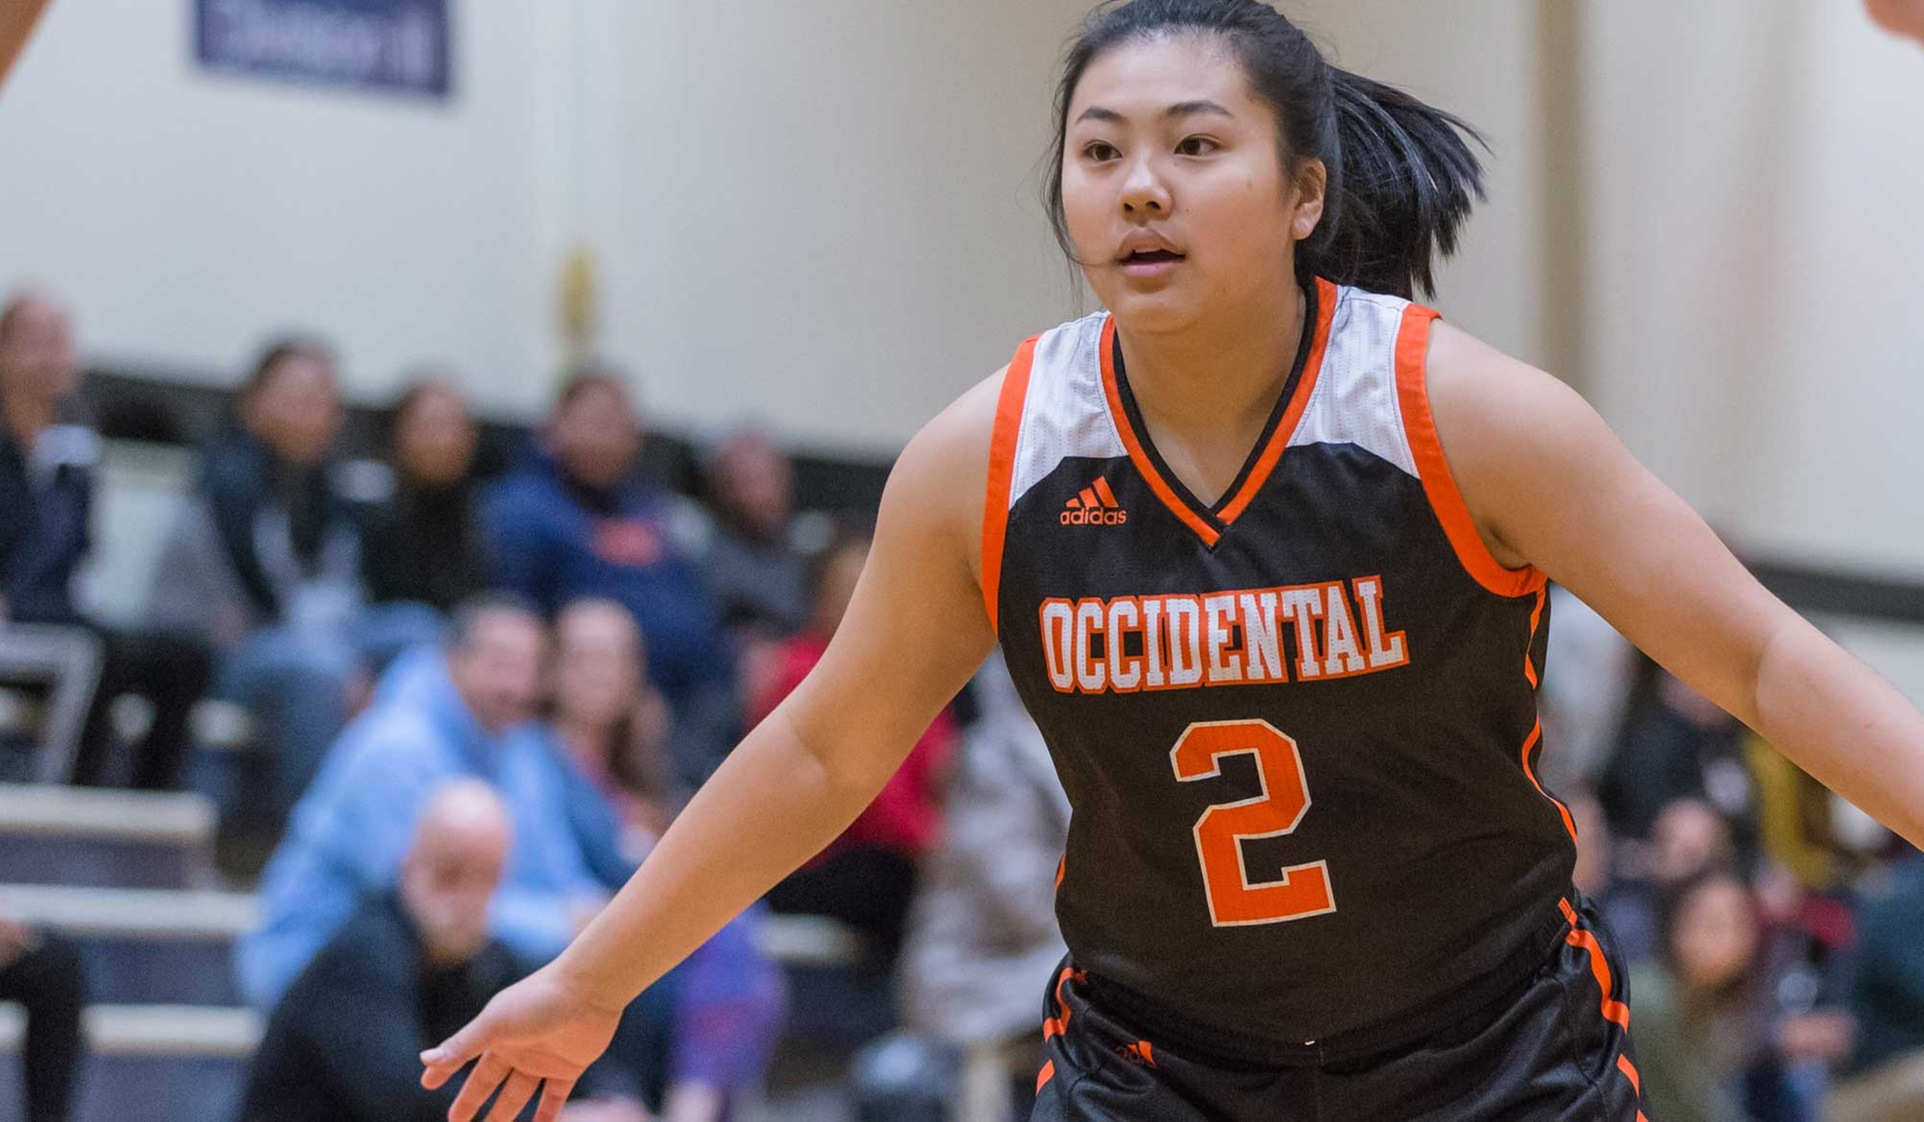 Oxy Edged By Poets After Comeback